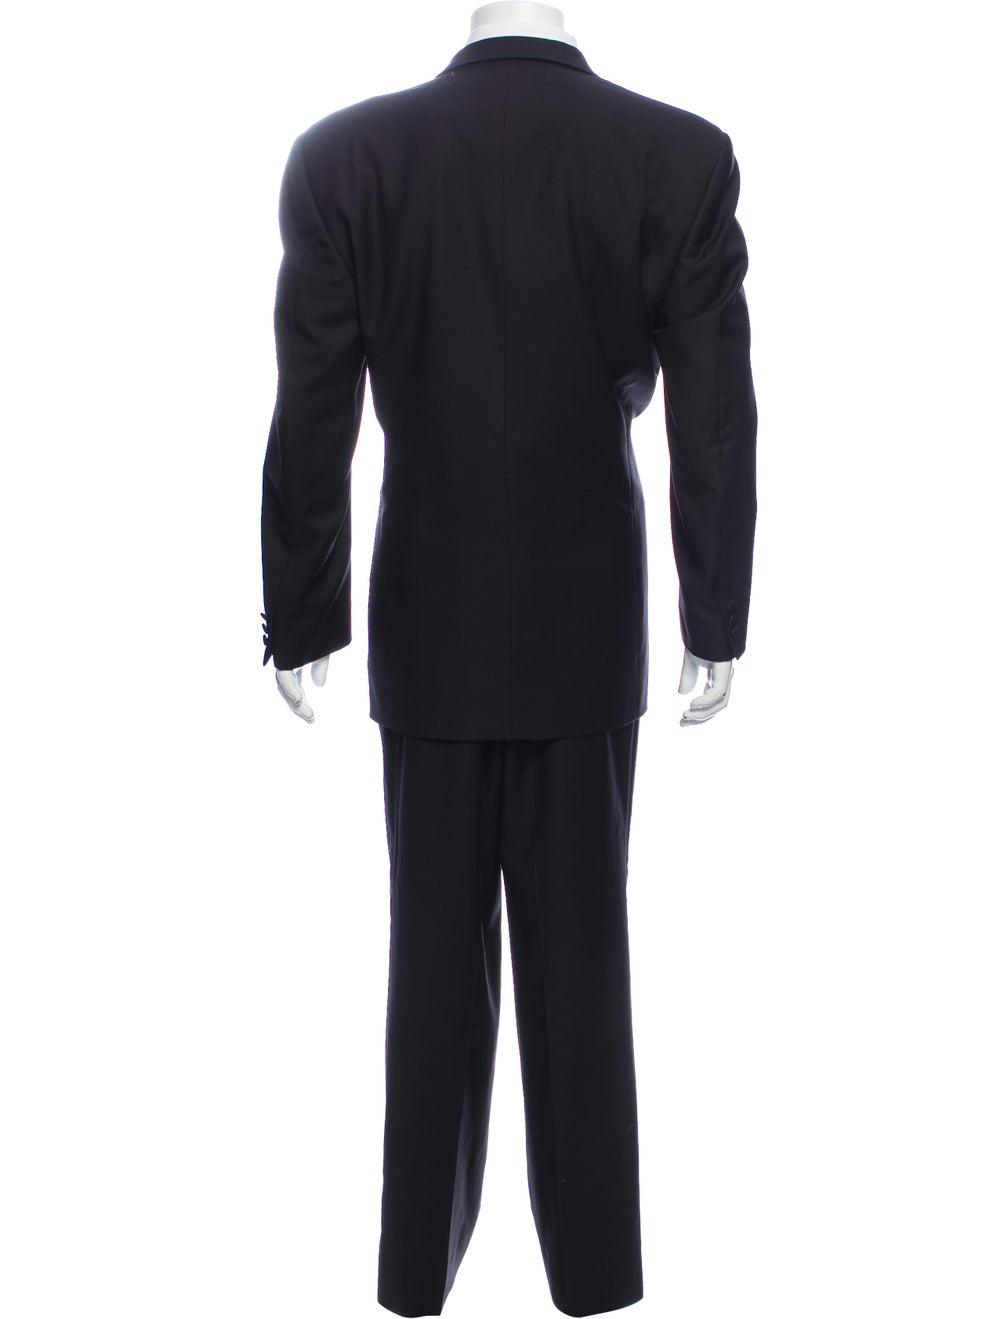 Ermenegildo Zegna Two-Piece Suit Black - image 3